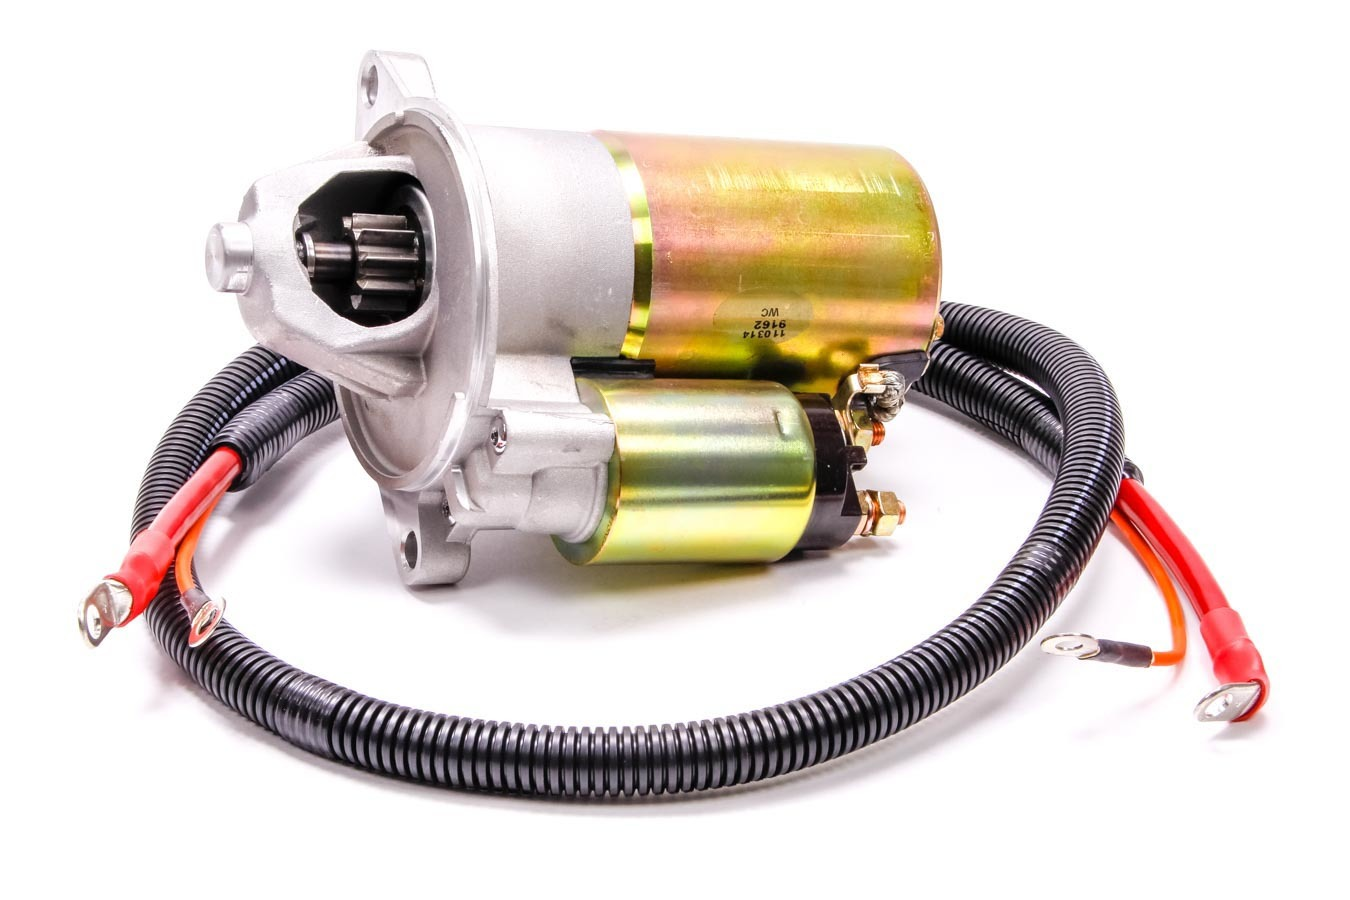 Ford M11000-B51 Starter, High Torque, Mini Starter, Gear Reduction, Cadmium / Natural, 157 Tooth Flywheel, Small Block Ford / Cleveland / Modified, Each